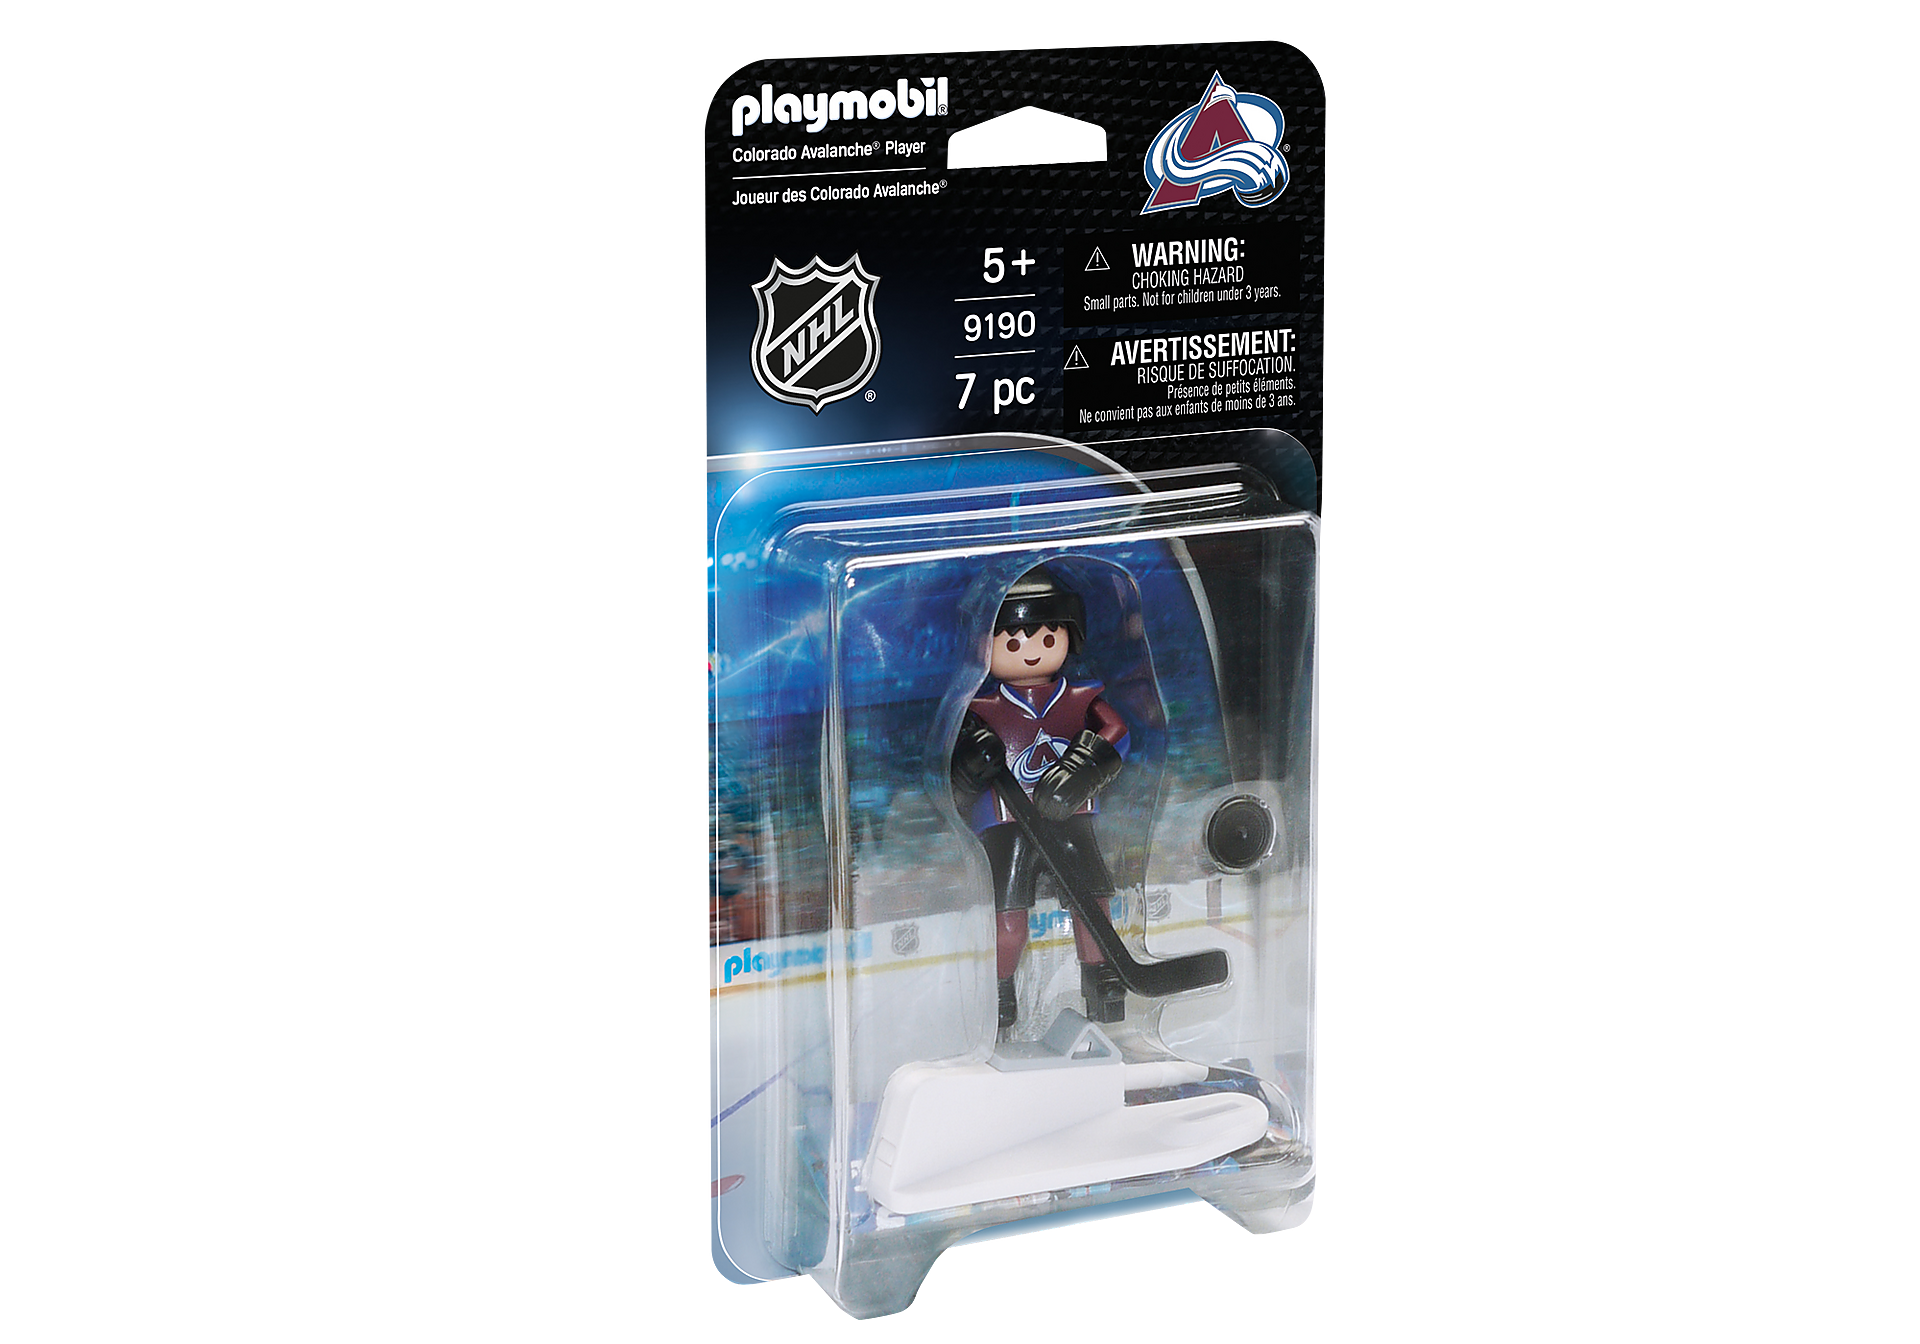 http://media.playmobil.com/i/playmobil/9190_product_box_front/NHL™ Colorado Avanlanche™ Player